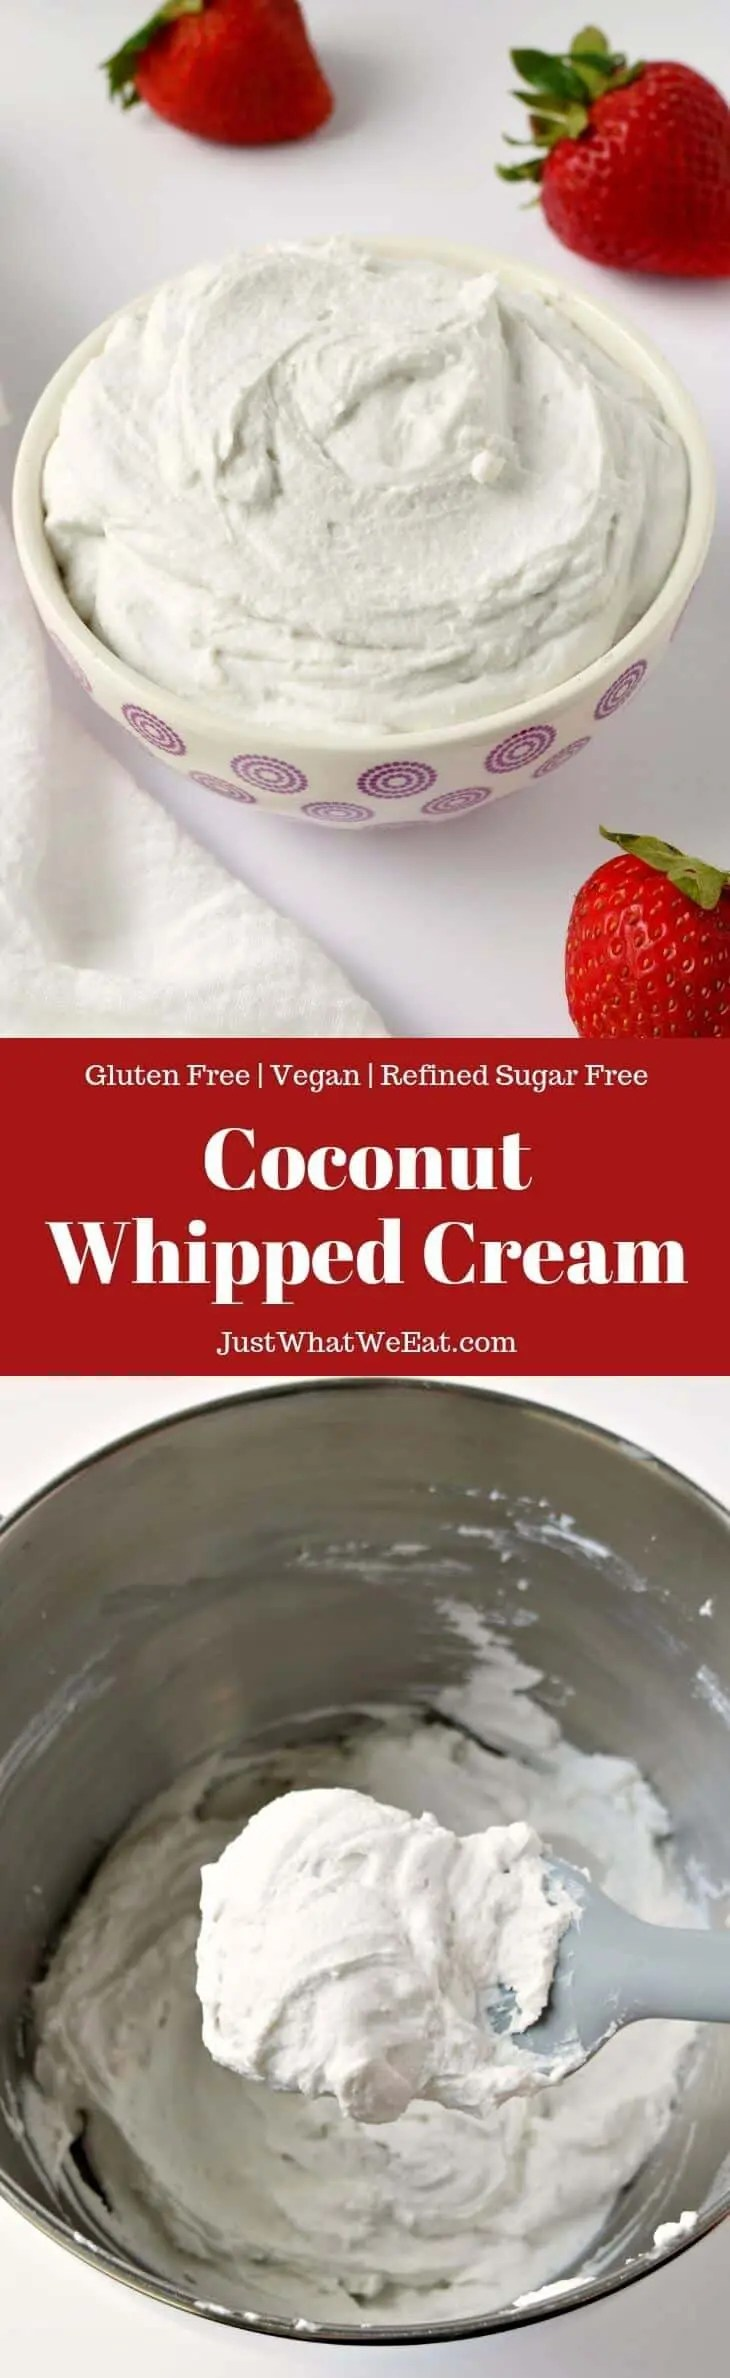 This easy Coconut Whipped Cream recipe is the perfect addition to any dessert! It's gluten free, vegan, refined sugar free, and tastes amazing!